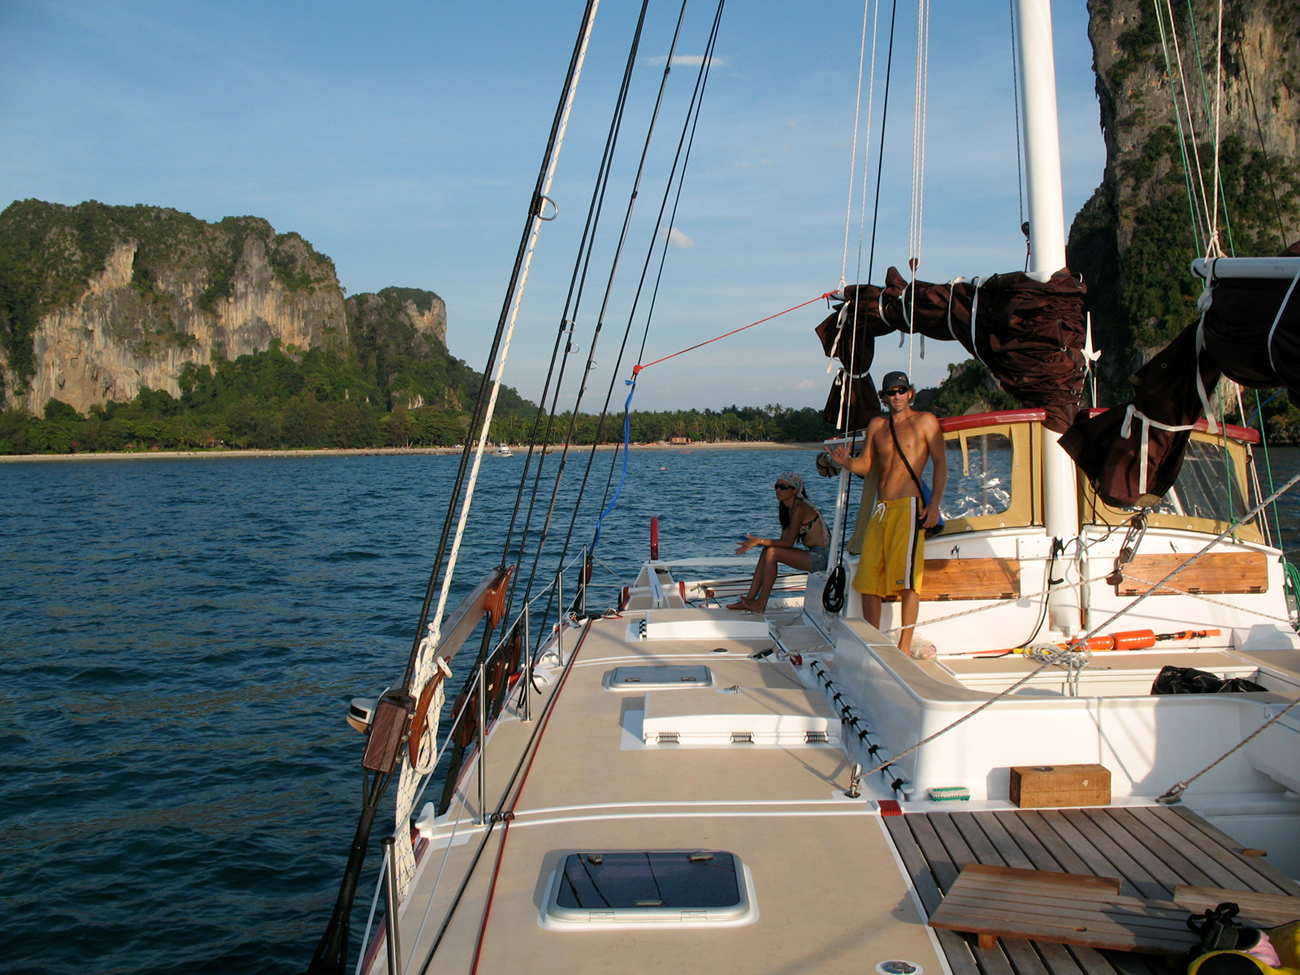 View from Pahi deck, two people aboard, dramatic landscape